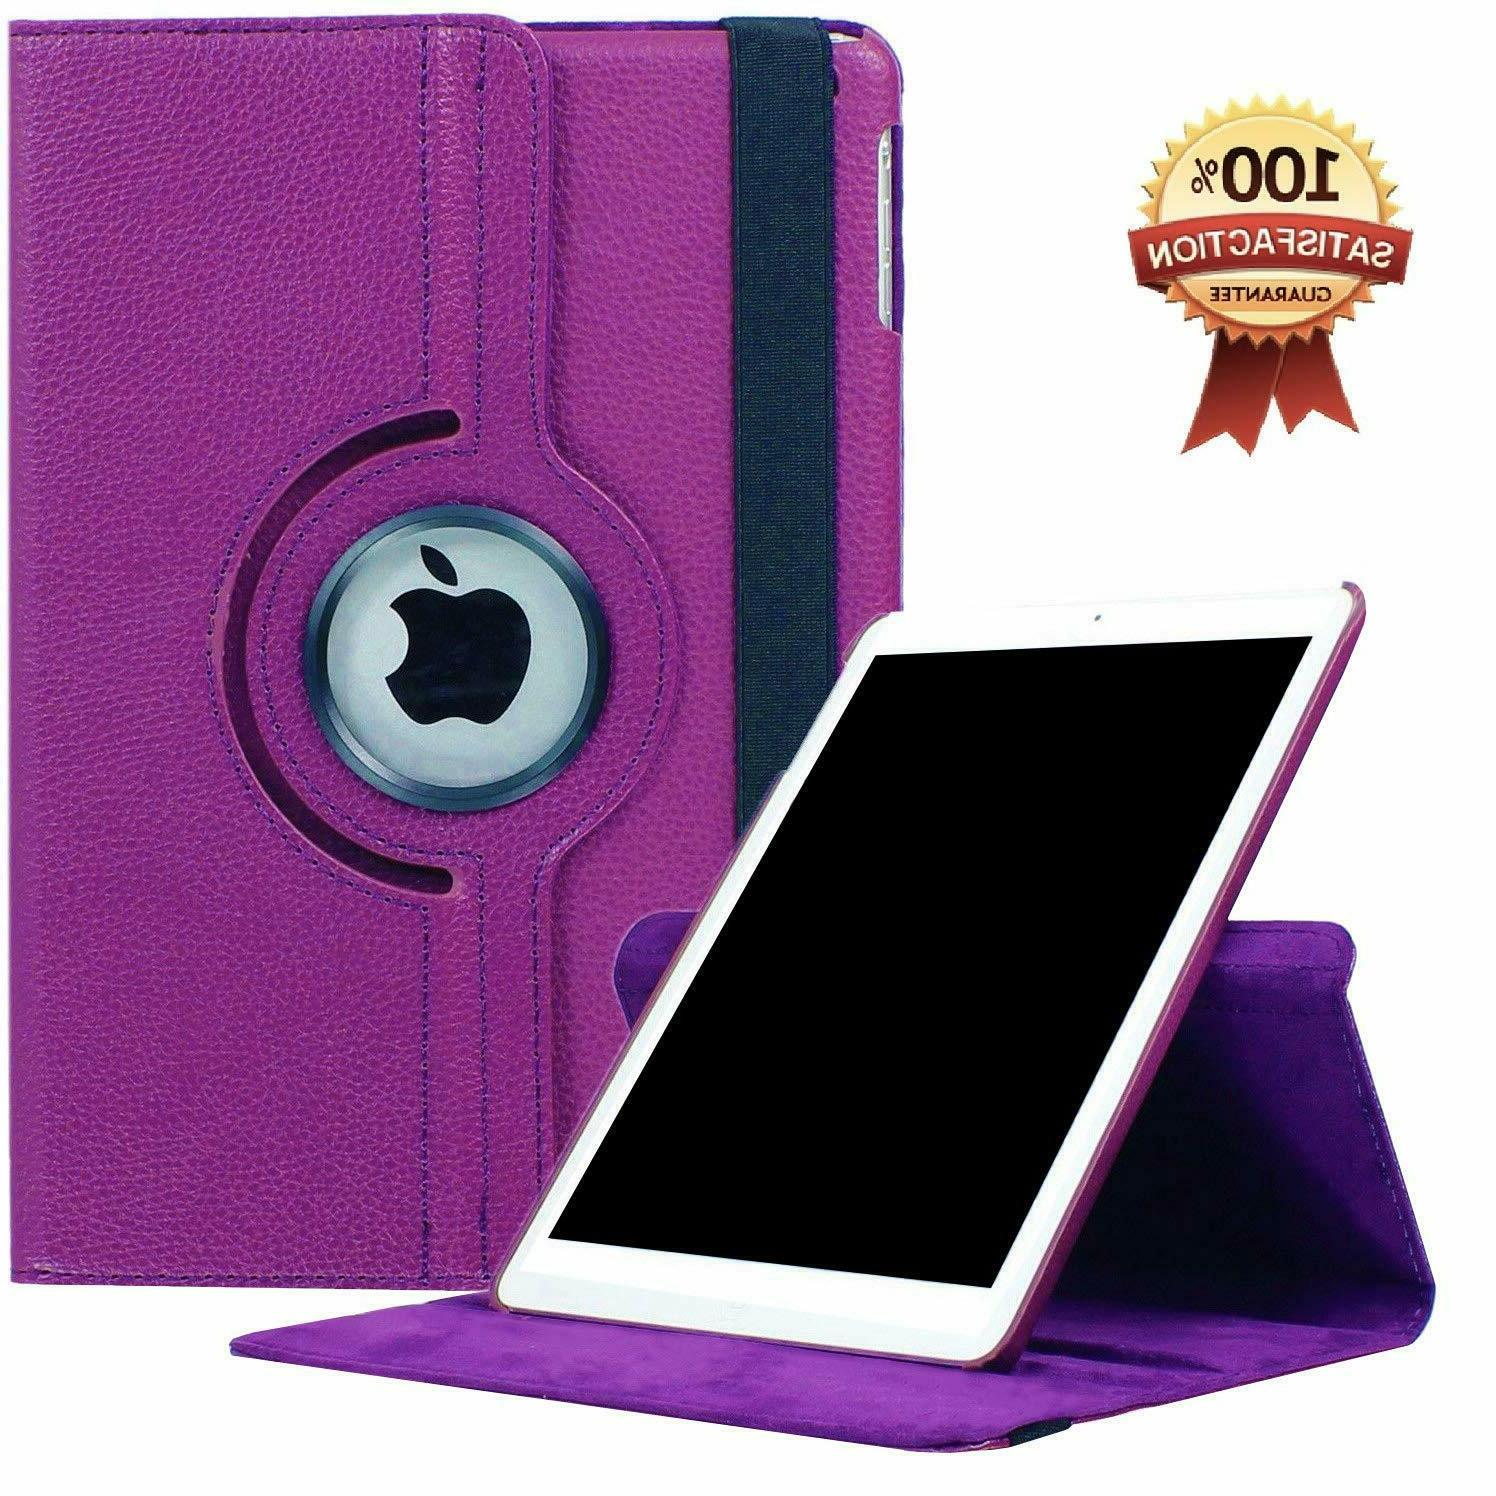 360 Leather Case For iPad Shockproof